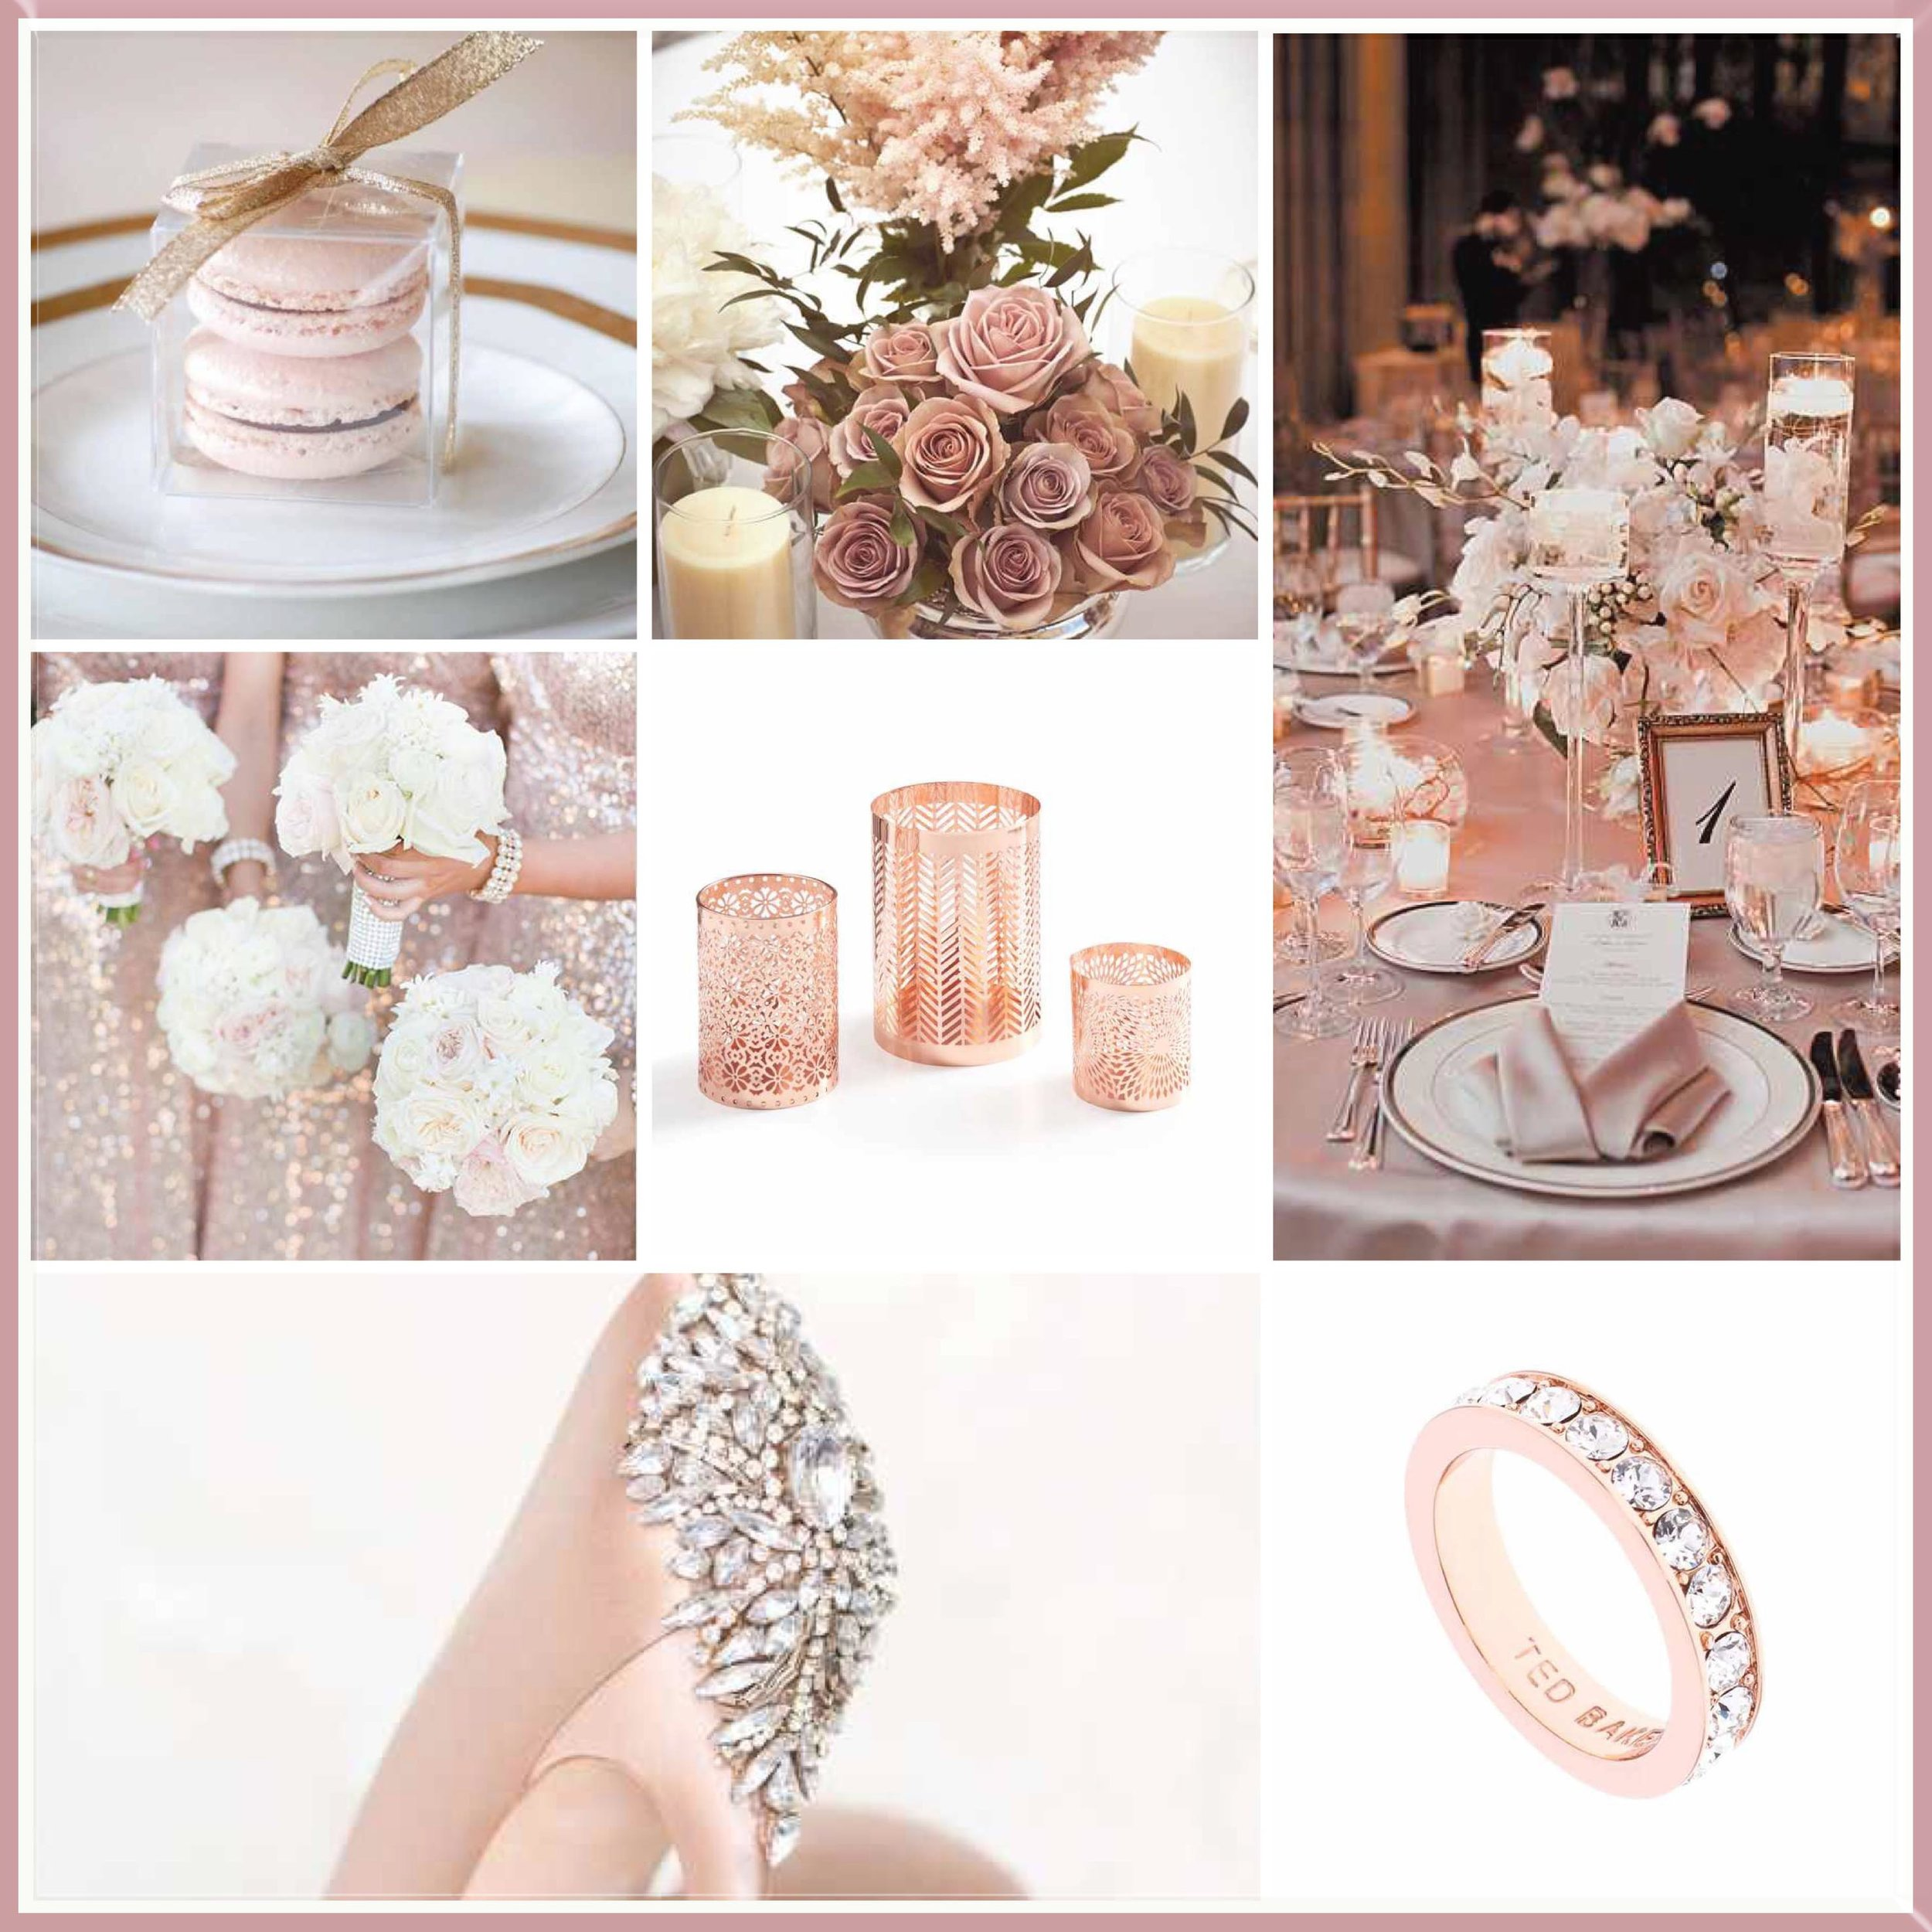 Rose moodboard designed by Luxe by Minihaha & co.